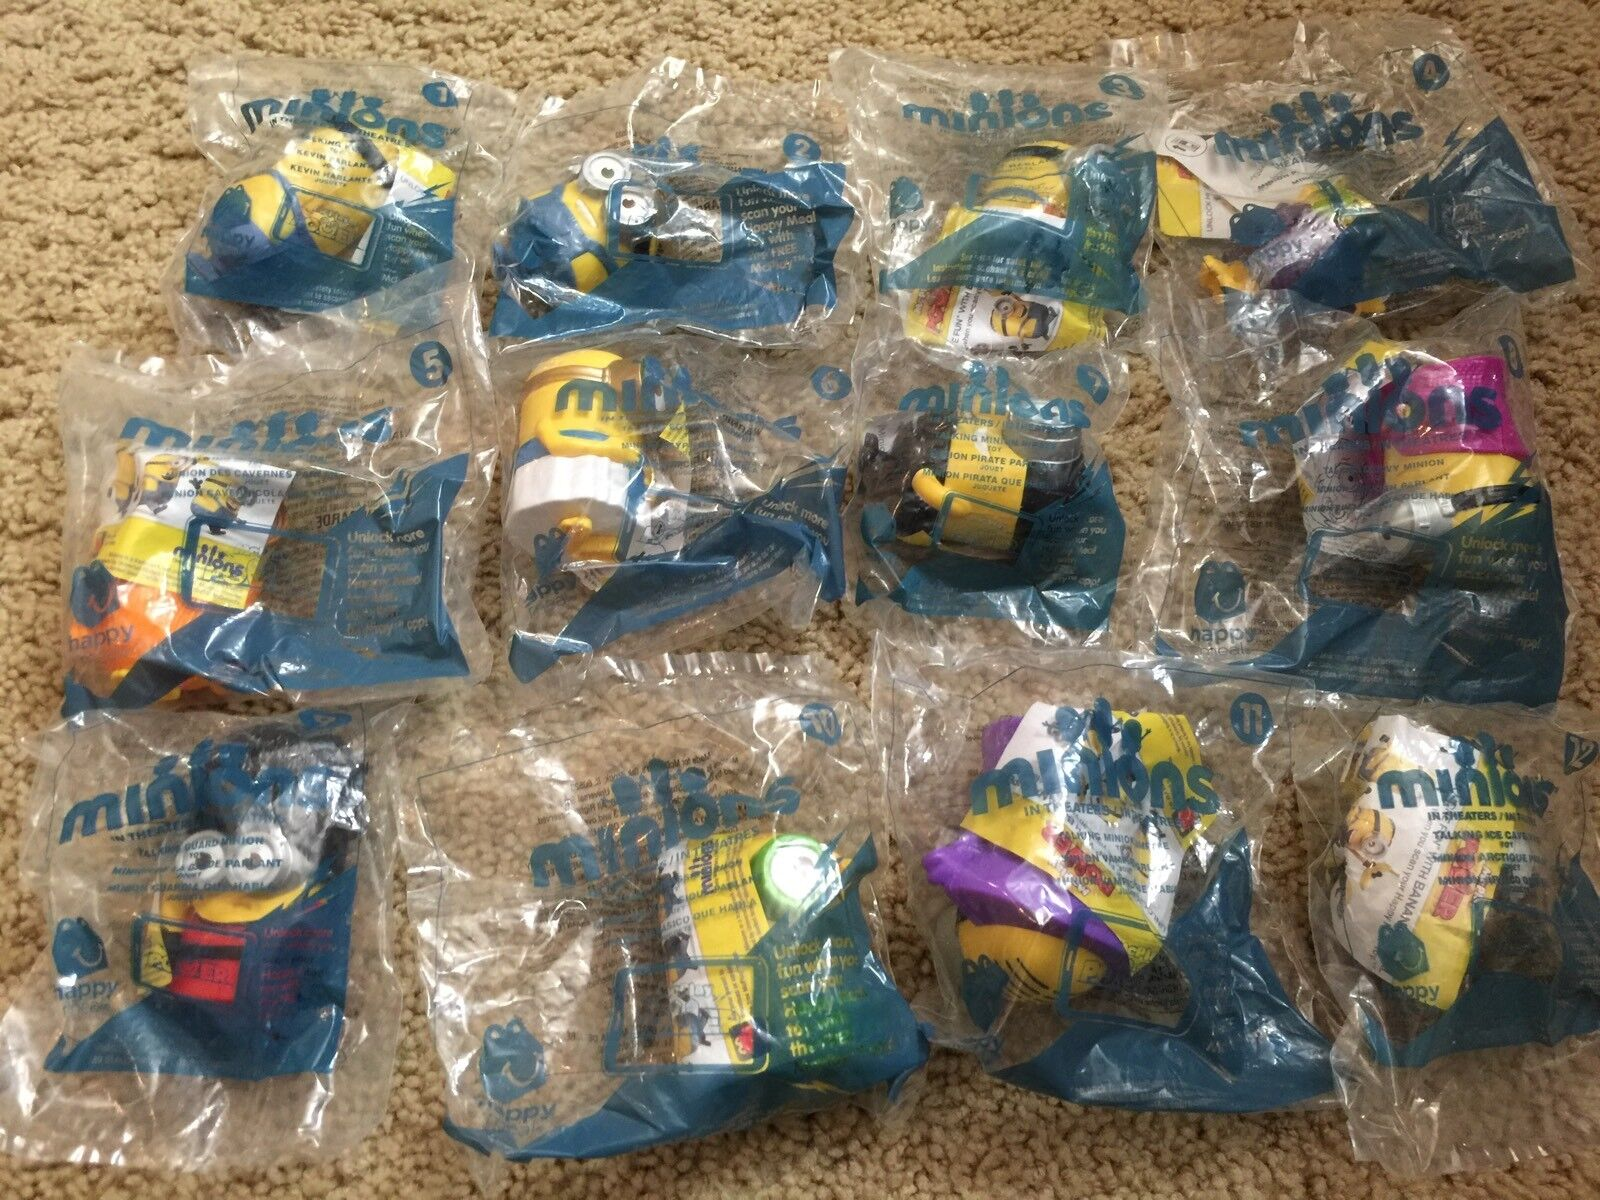 Minions McDonald's Happy Meal Toy 2015 Set of 12 and Walmart Minion Gift Card